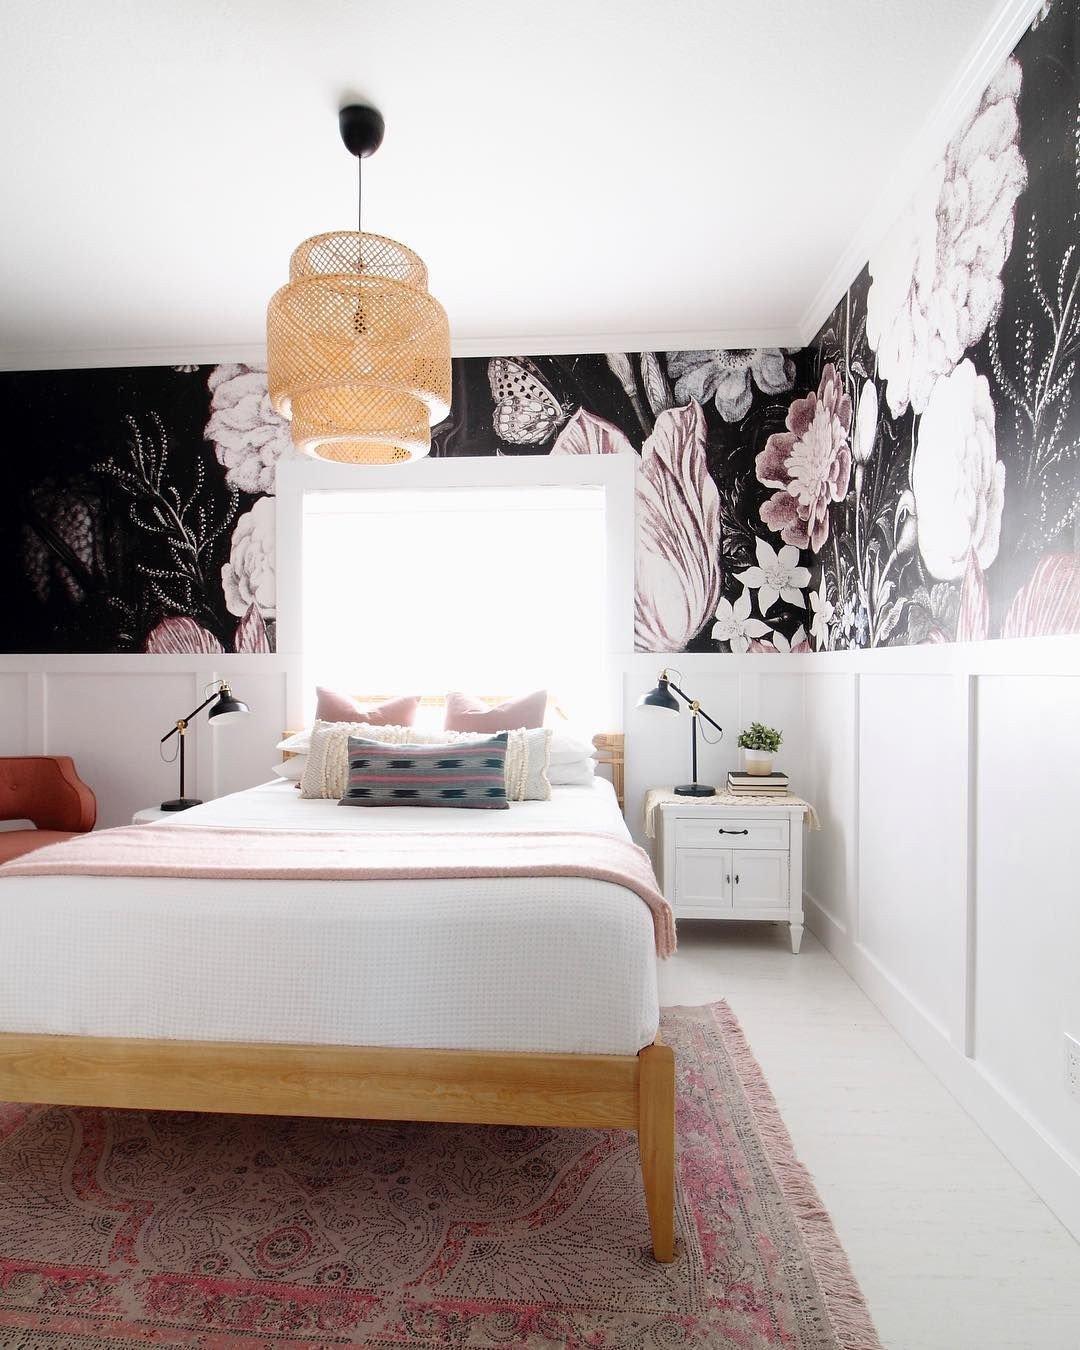 How to Decorate Bedroom Walls New Vintage Floral Art Removable Wallpaper